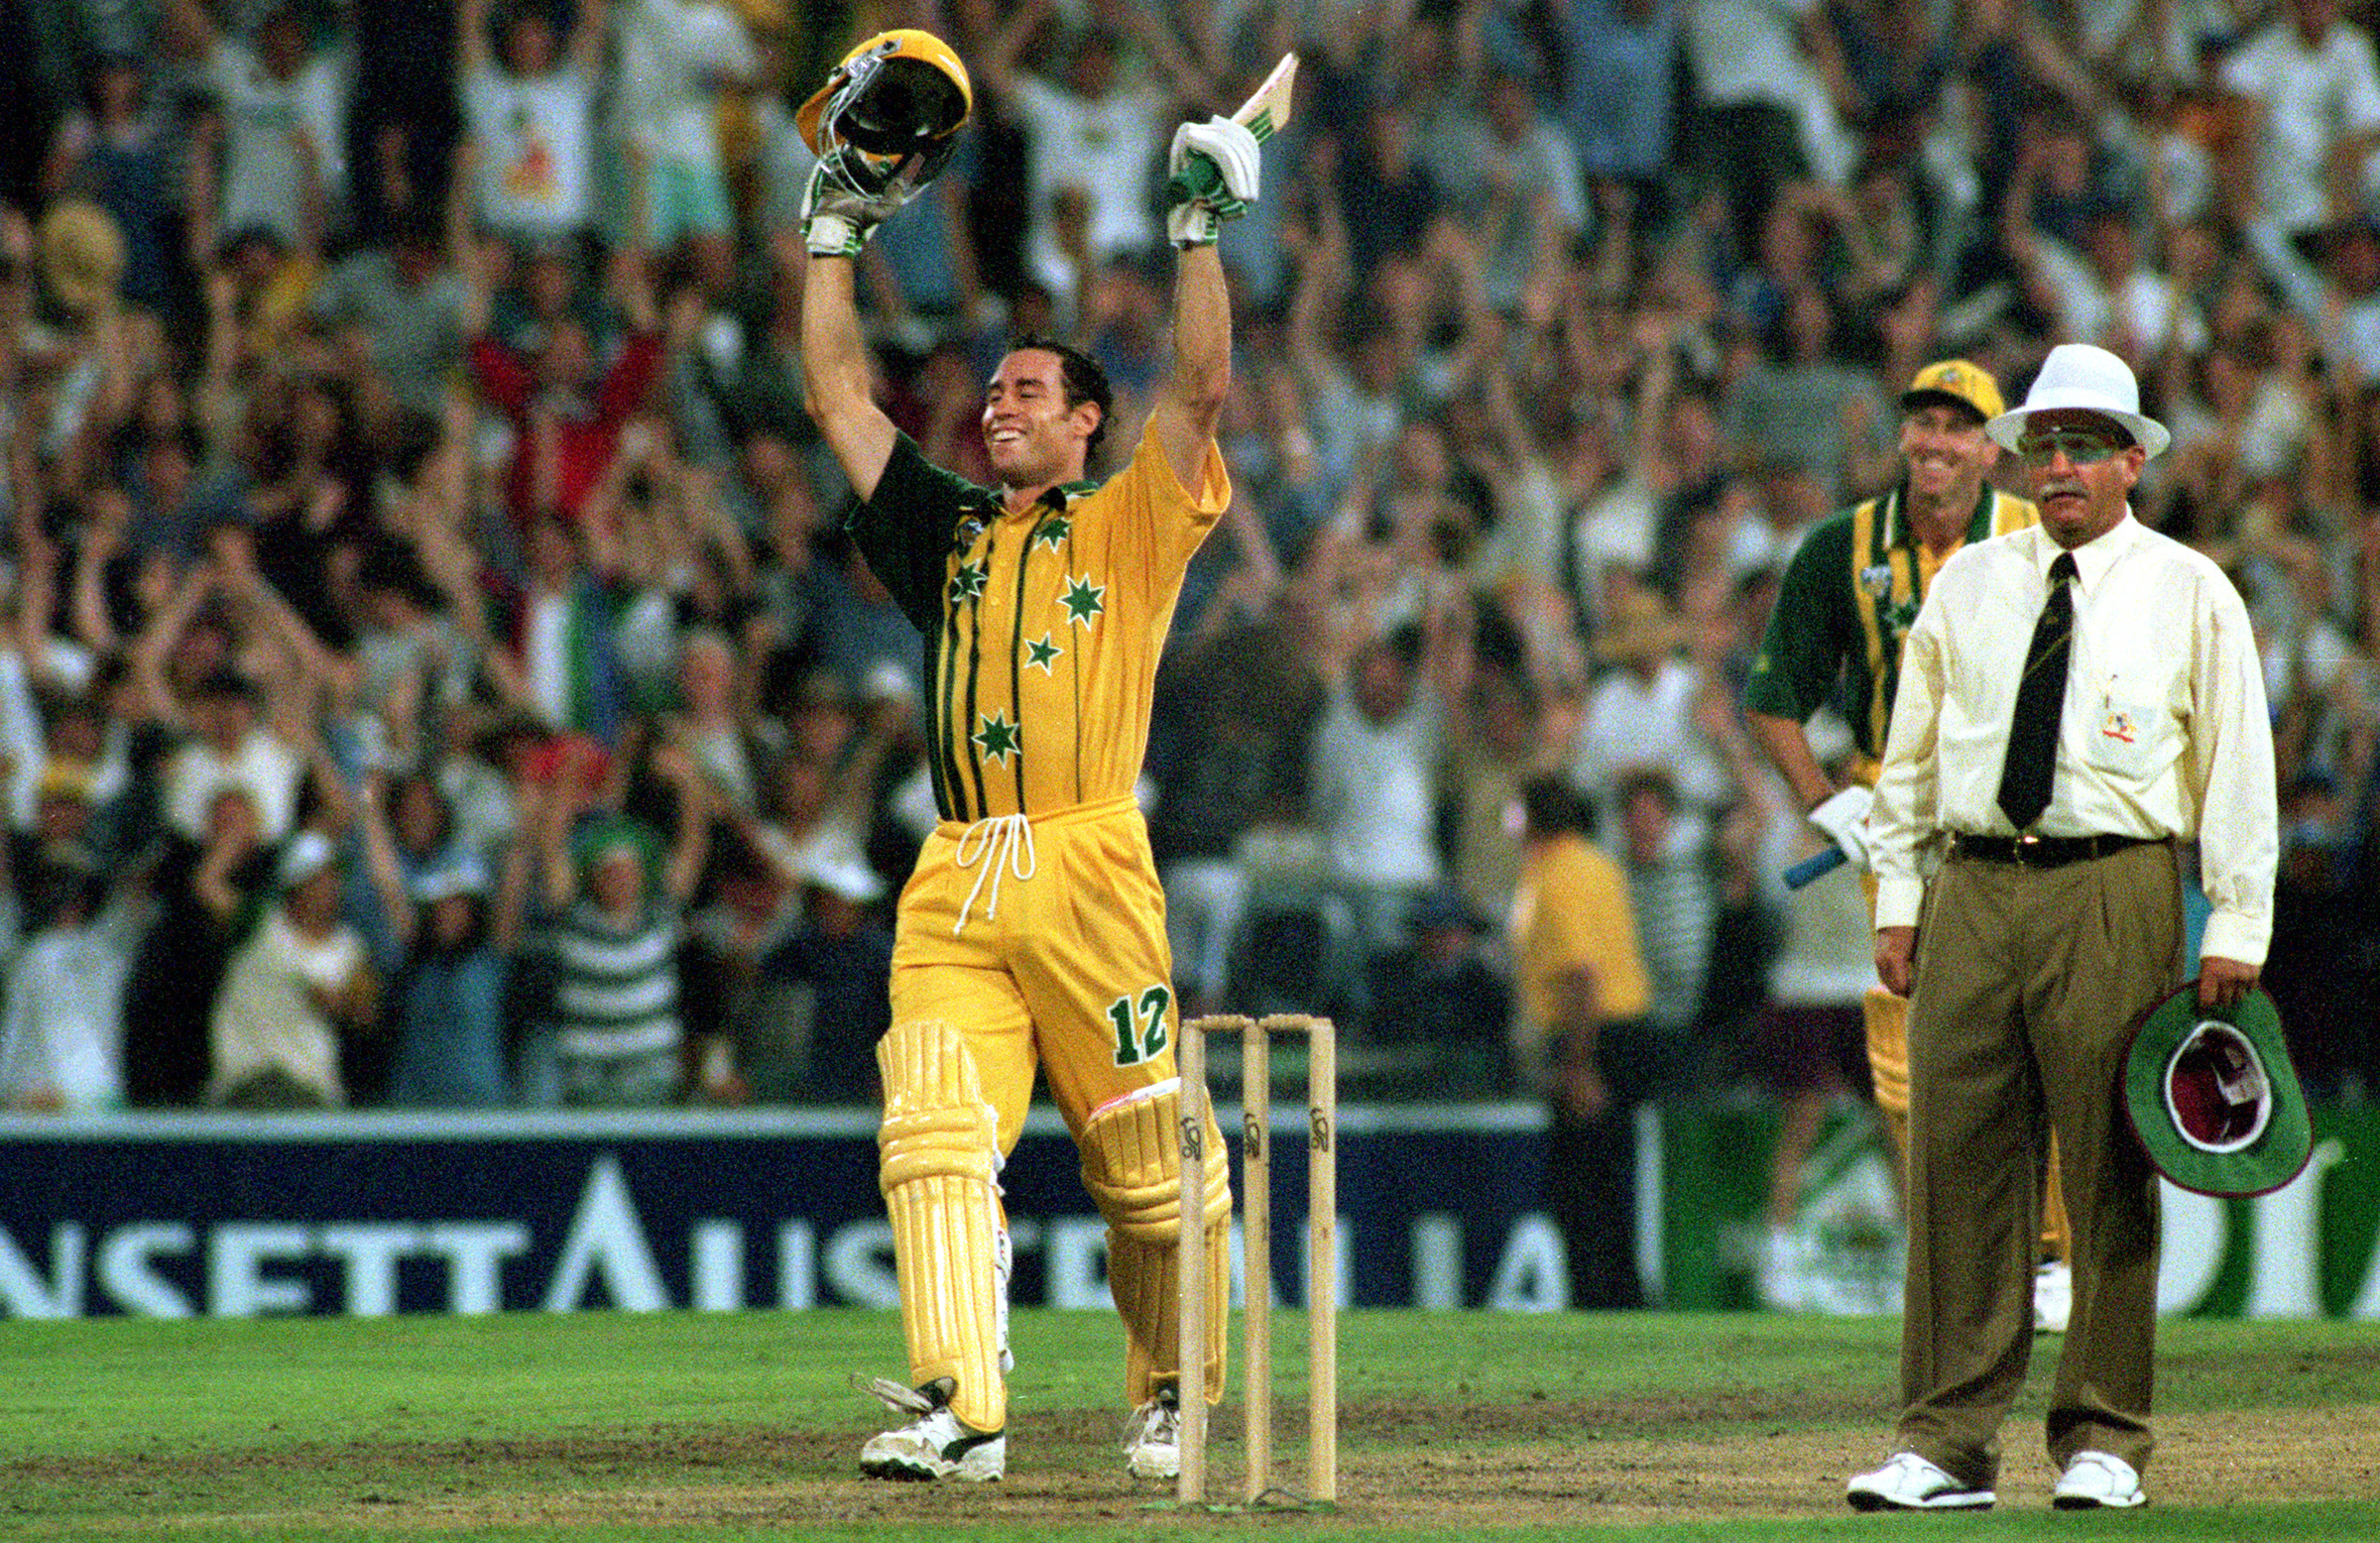 Bevan celebrates at the SCG erupts // Getty